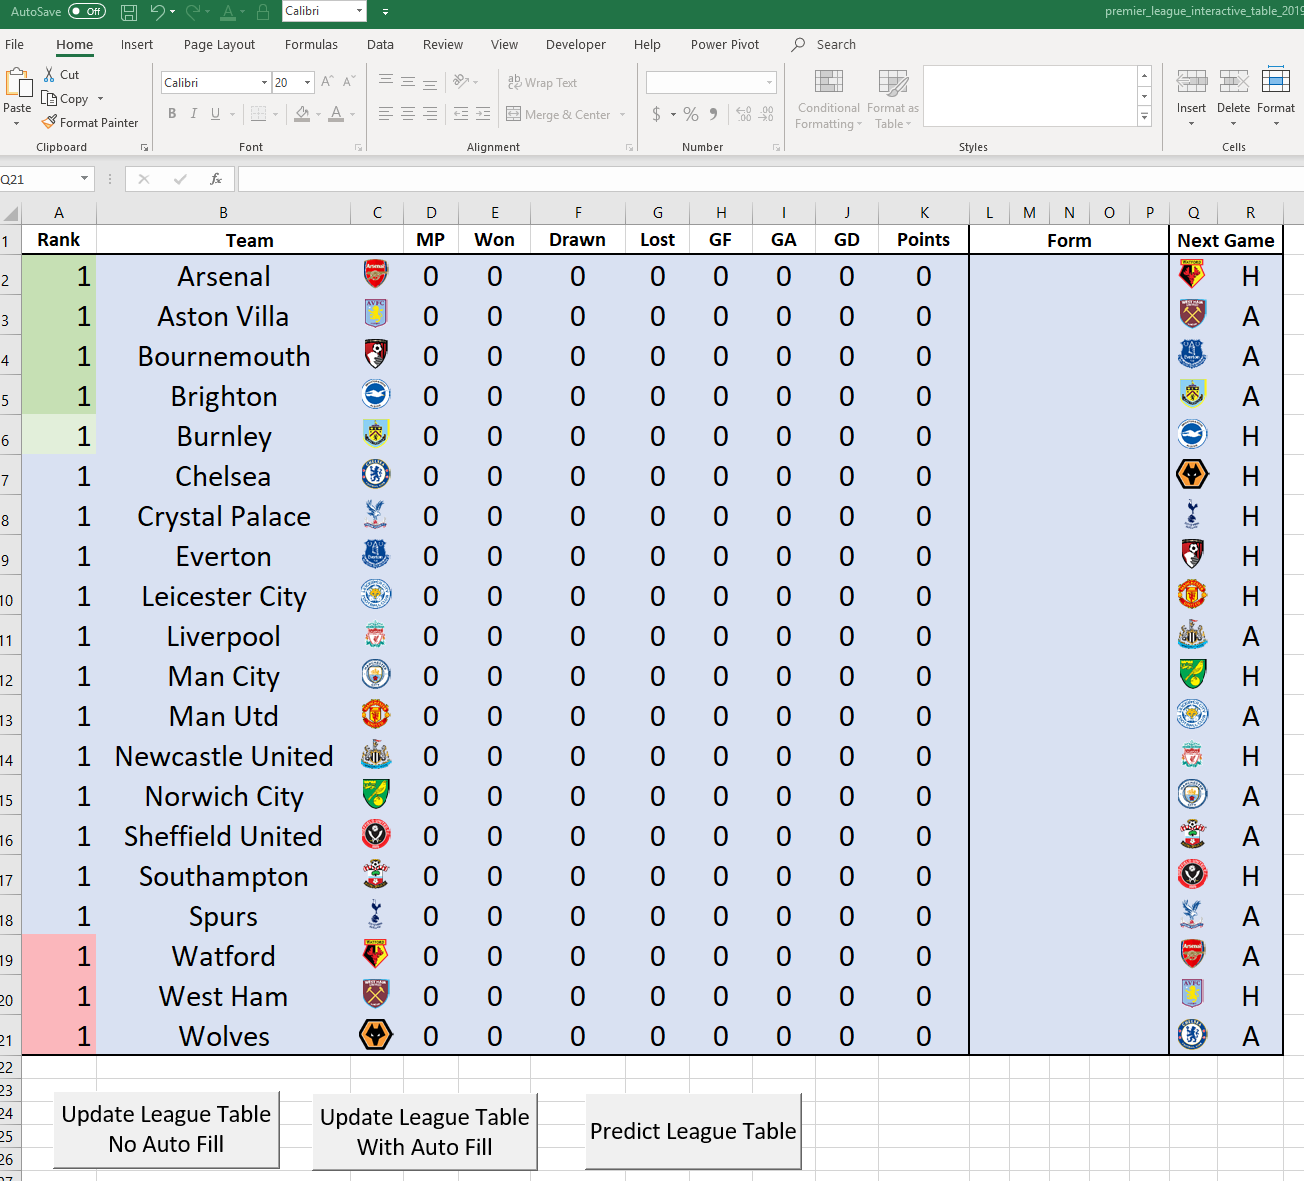 Interactive Premier League Table in Excel Download - The